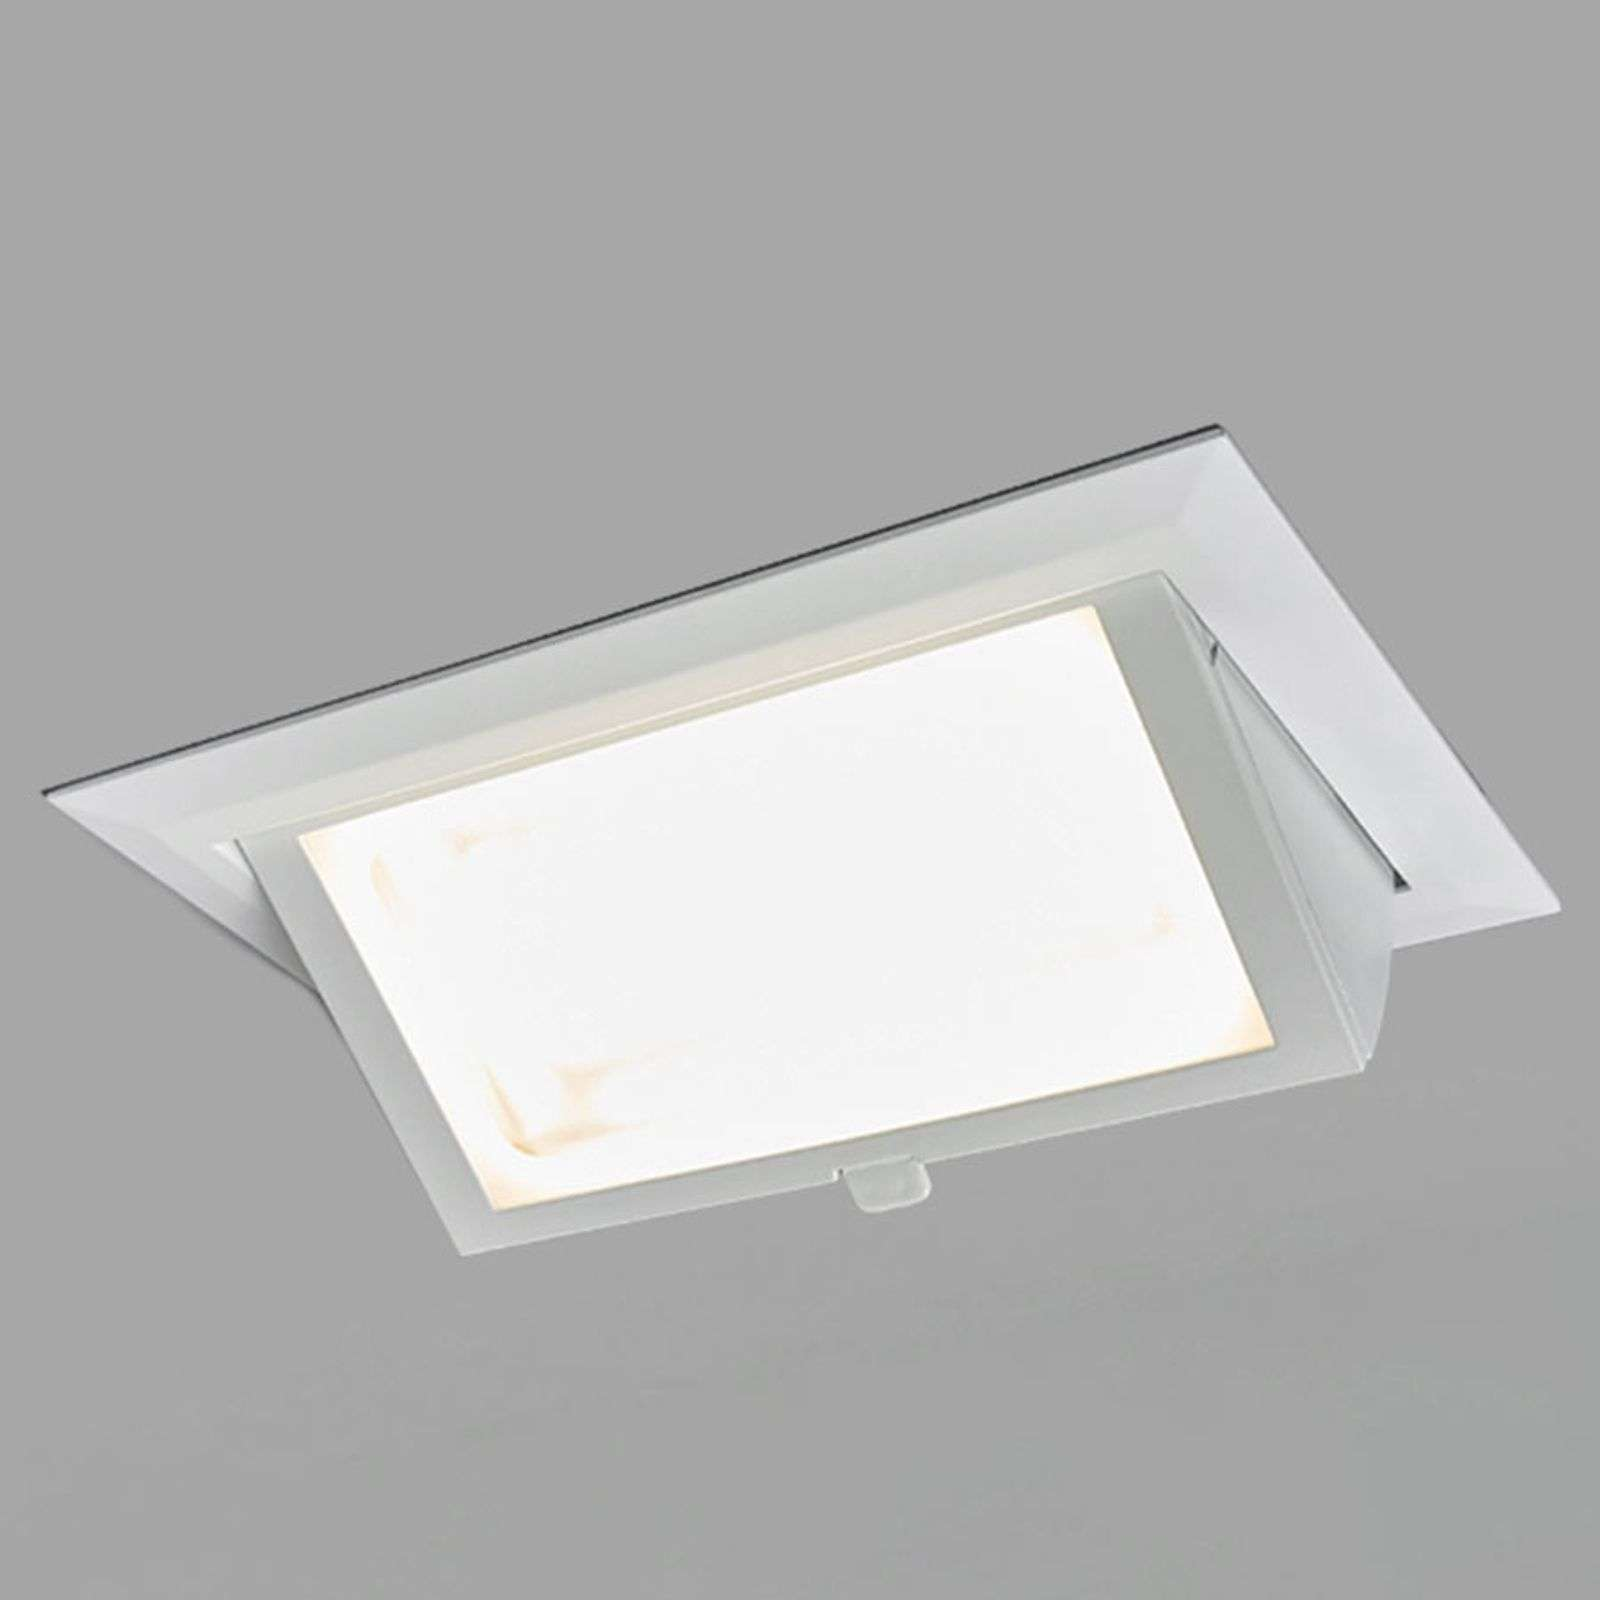 Downlight LED quadrato Adnan